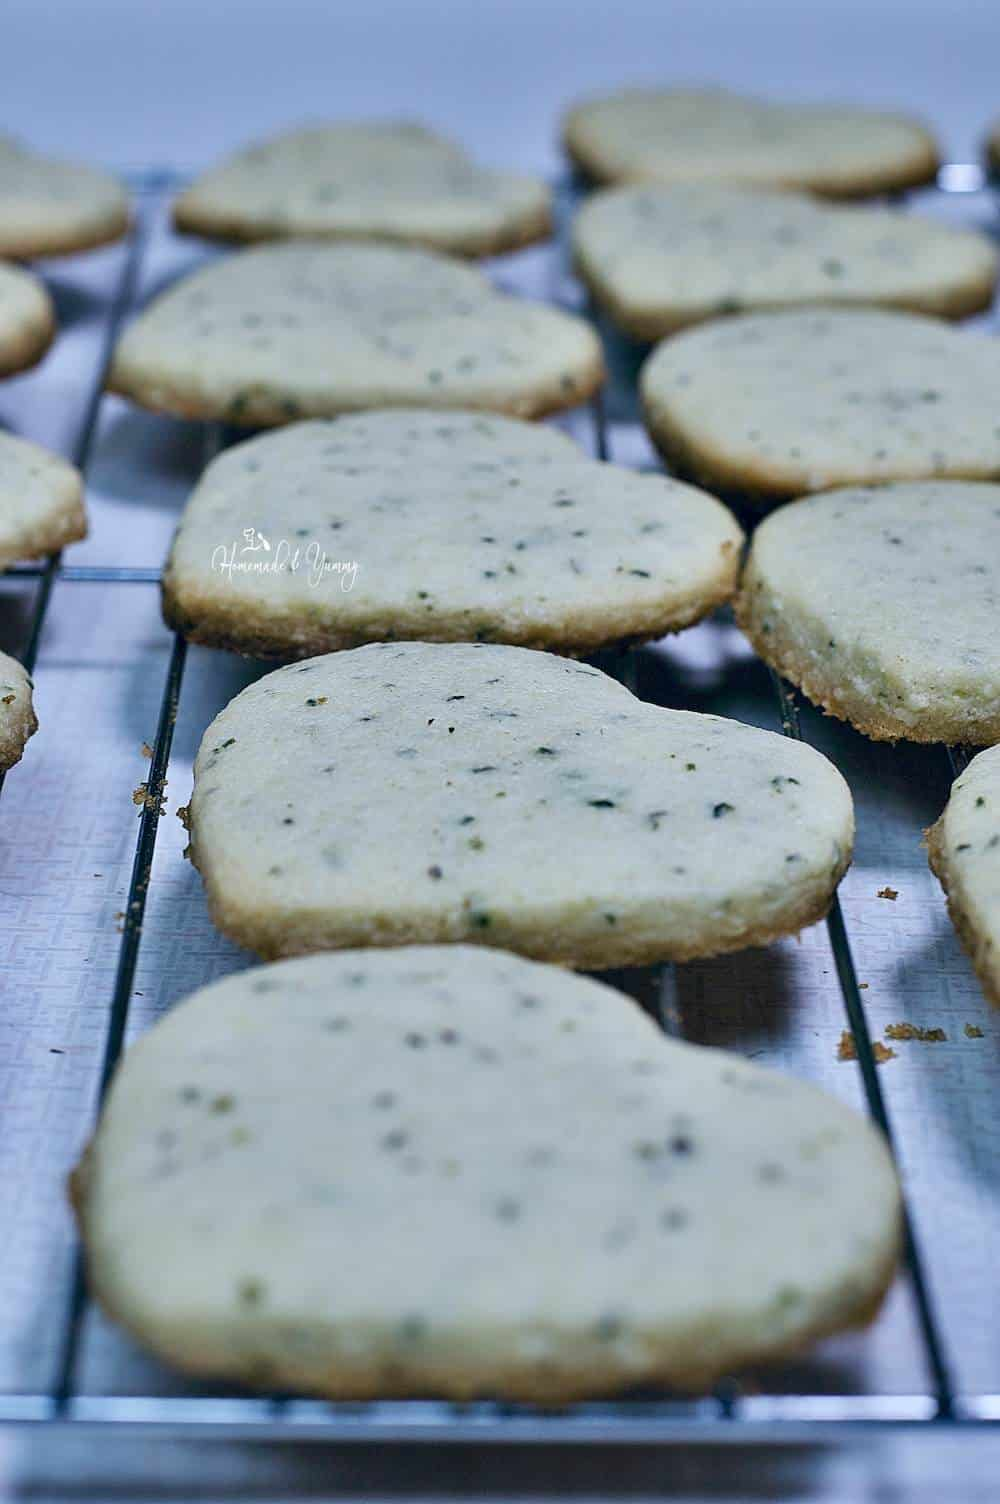 Fresh baked heart shaped cookies with hemp seeds cooling on a rack